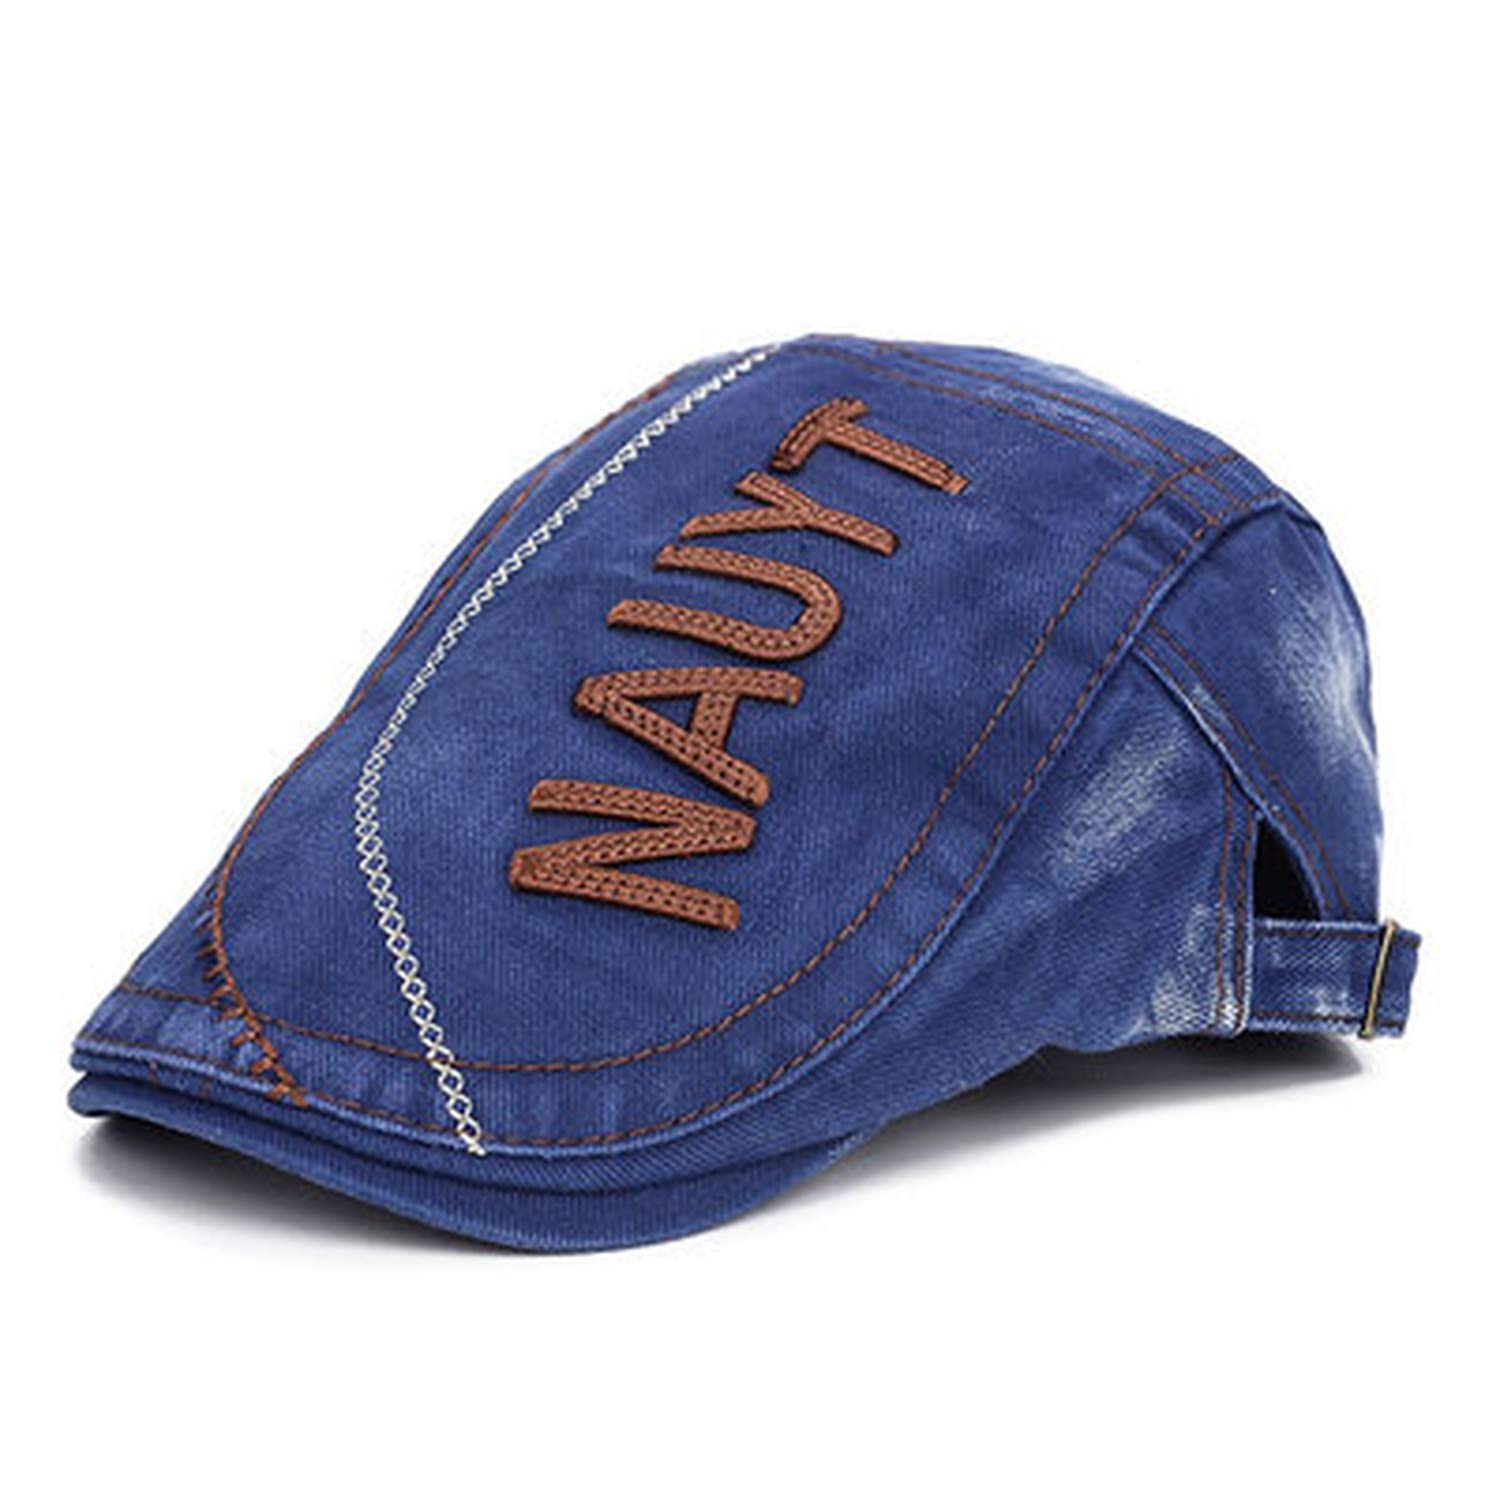 Men Letter Embroidery Newsboy Caps Hats Washed Old Hat Retro Style Gatsby Cap Cotton Flat Cap Hombre Casquette